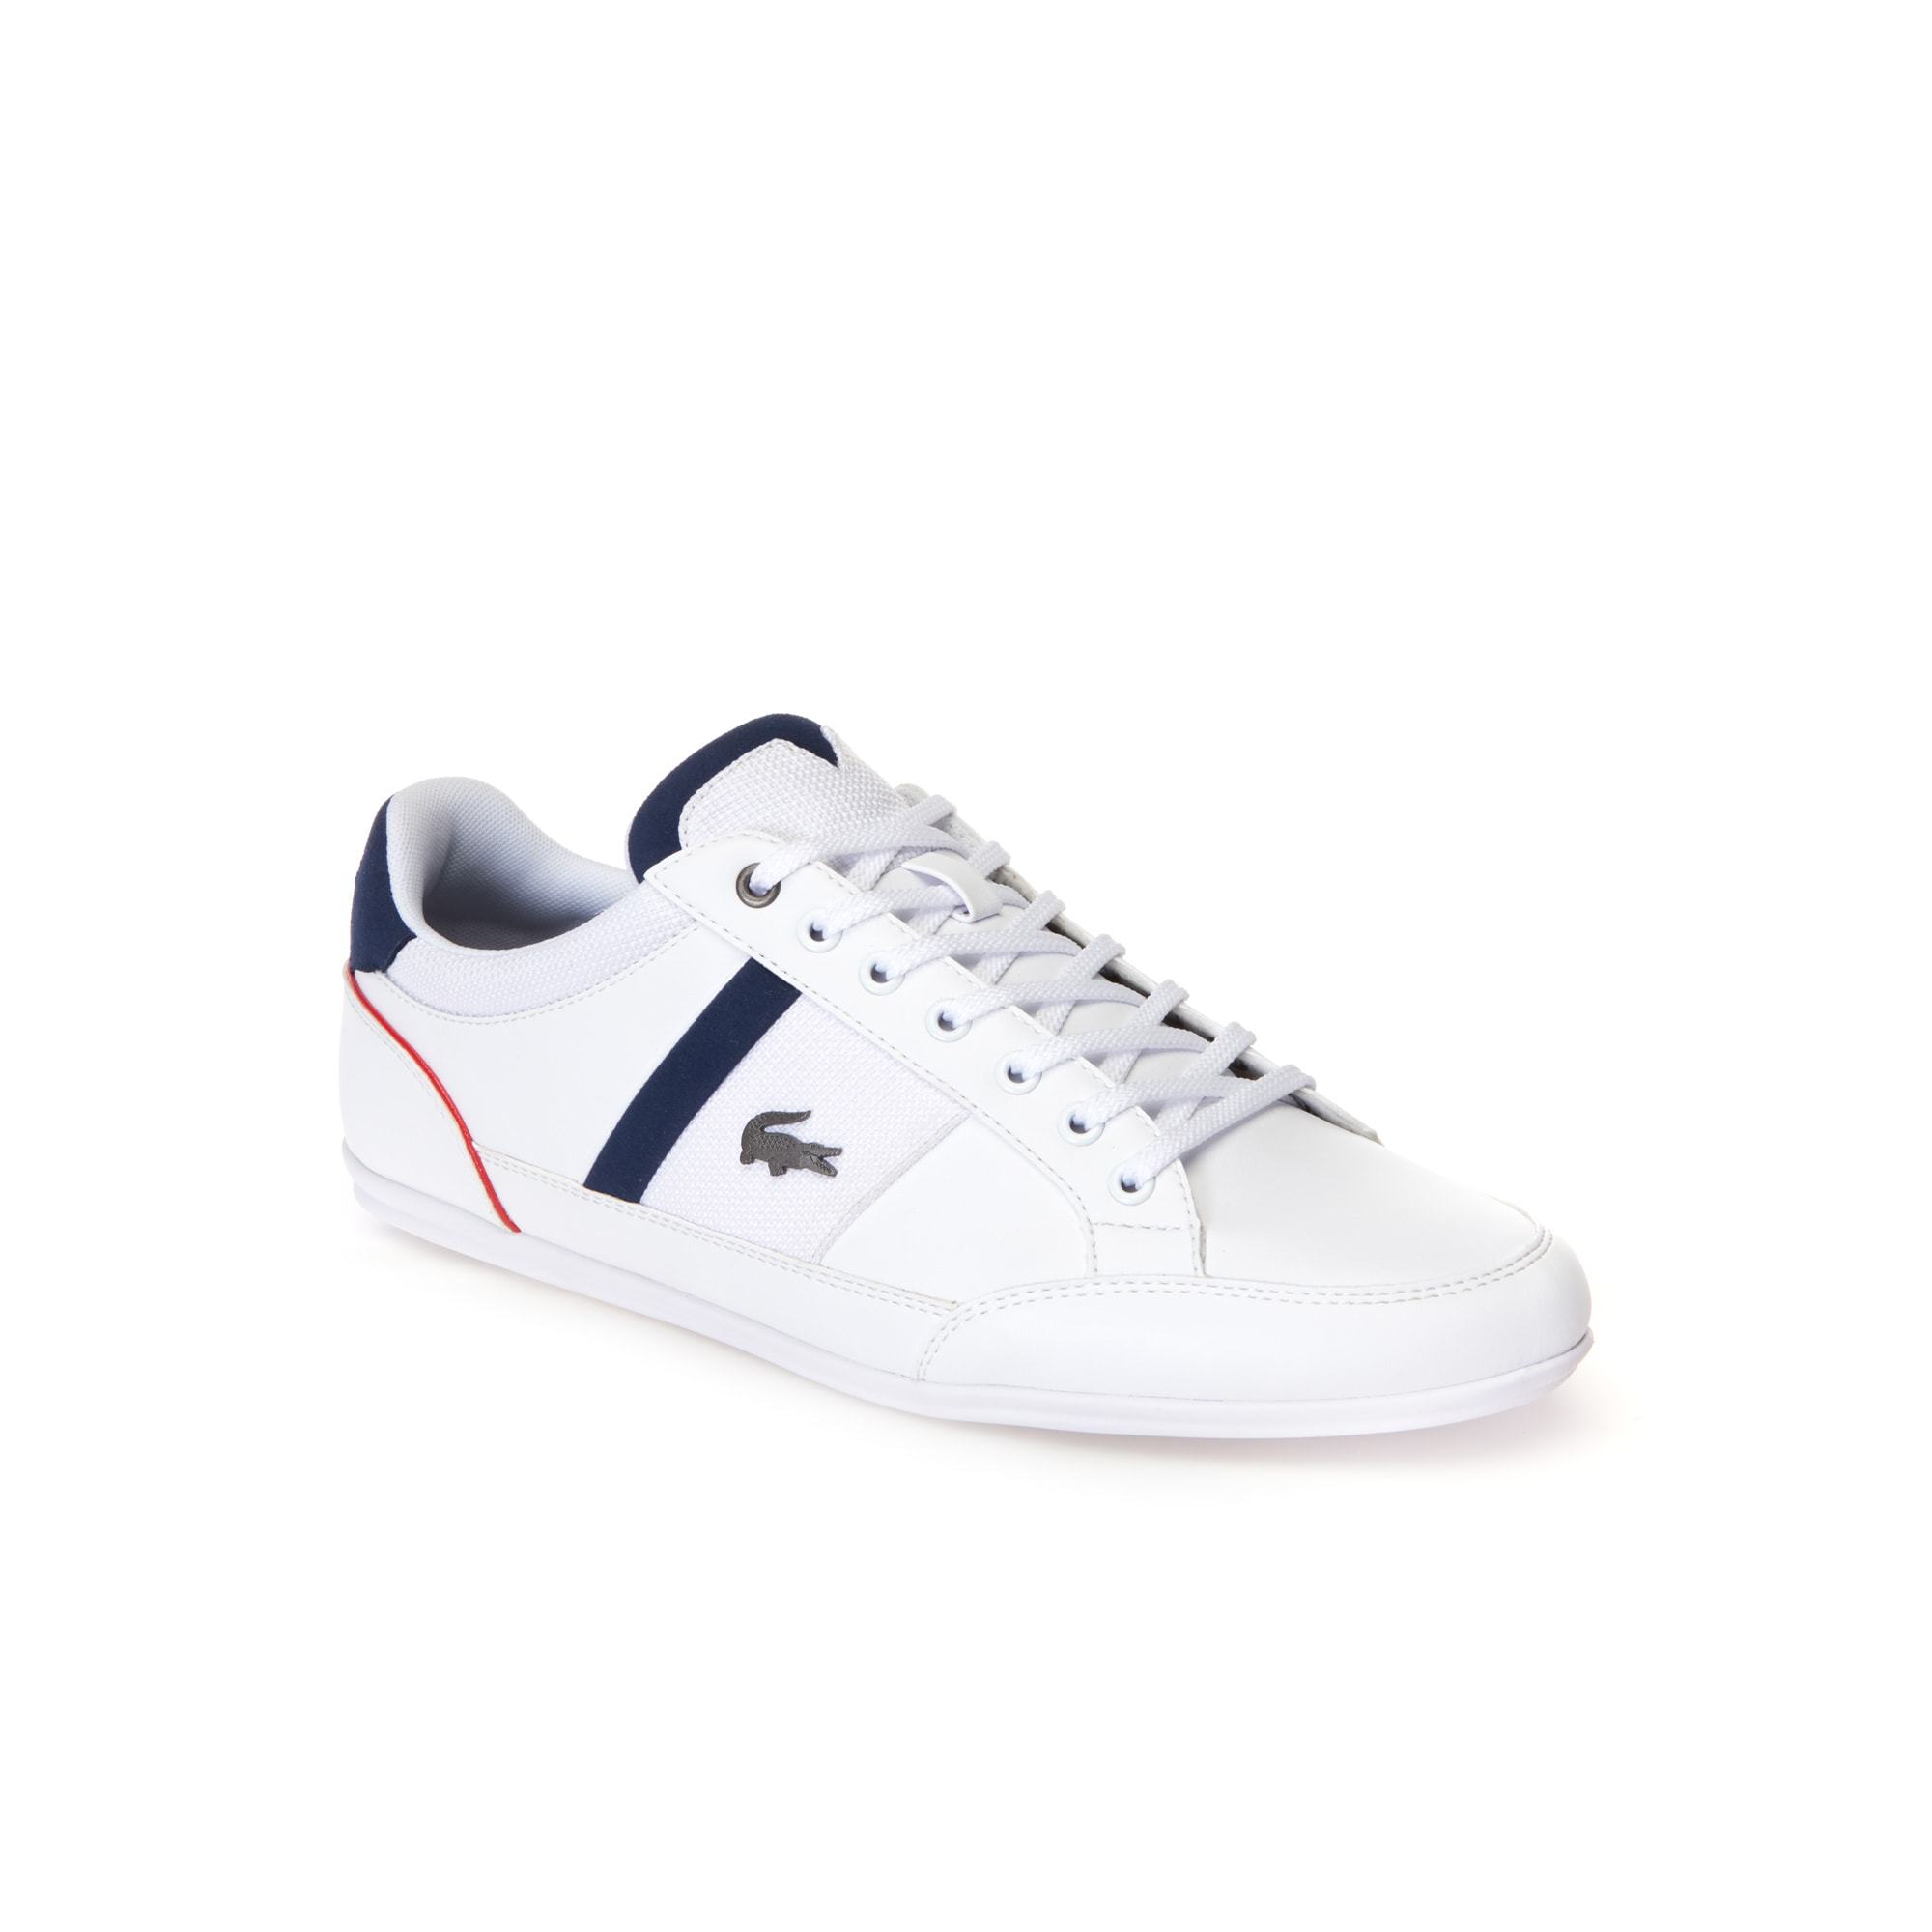 b05d609f57d LACOSTE - Nova Boutique Digital